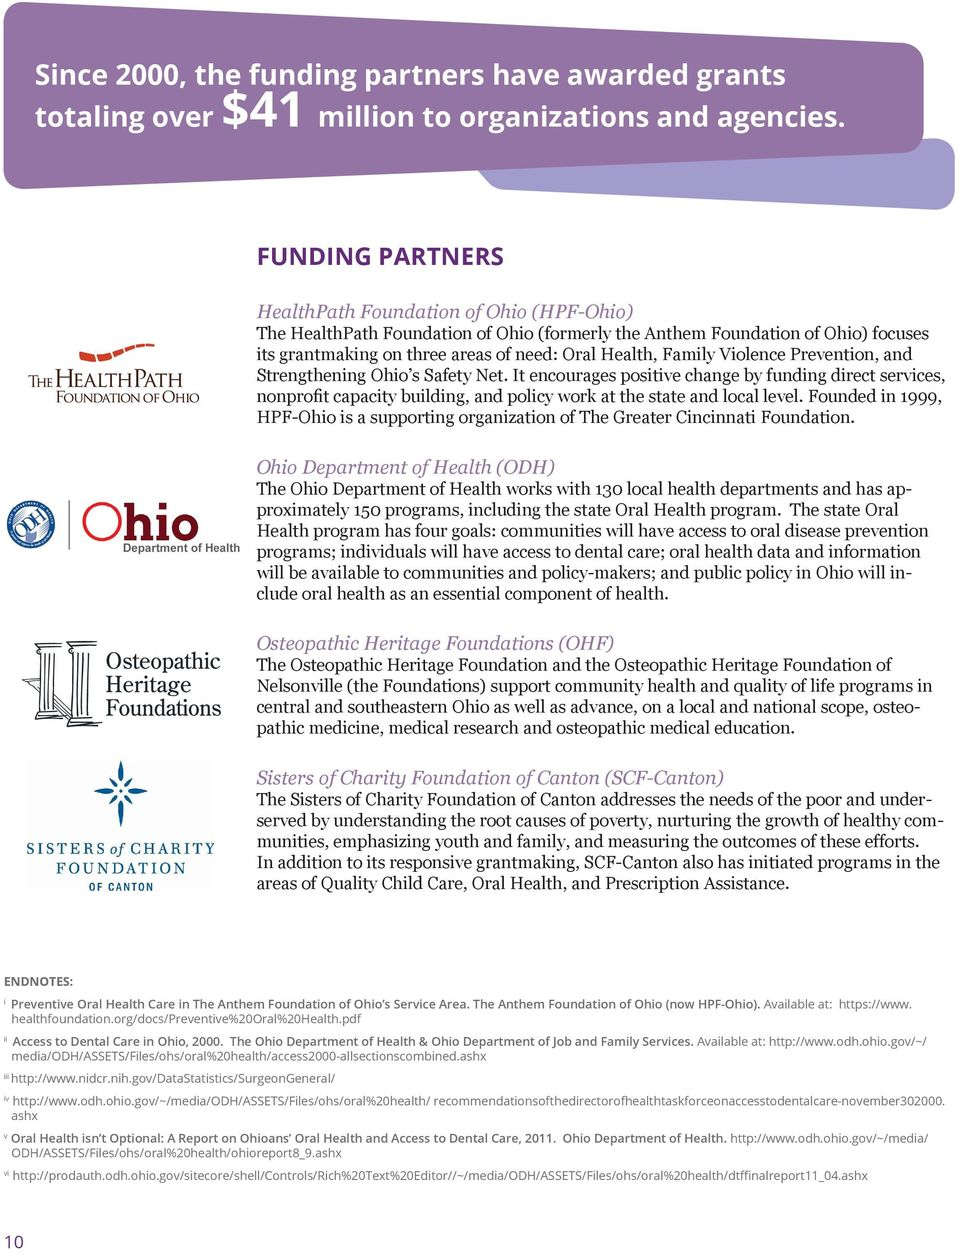 Family Violence Prevention, and Strengthening Ohio s Safety Net. It encourages positive change by funding direct services, nonprofit capacity building, and policy work at the state and local level.